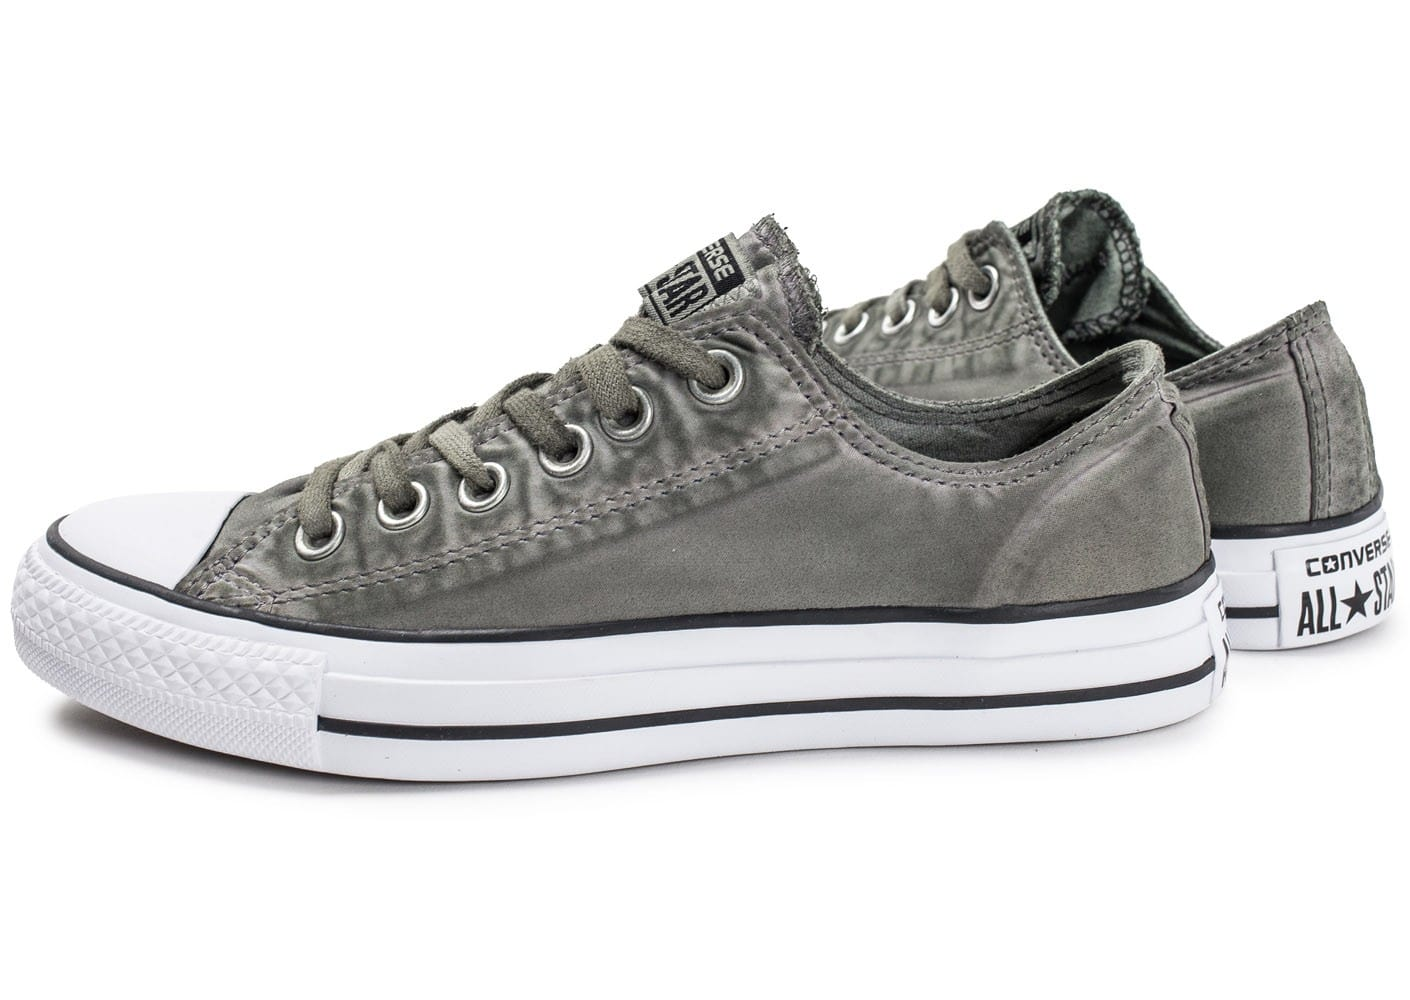 converse chuck taylor all star ox low kaki chaussures baskets femme chausport. Black Bedroom Furniture Sets. Home Design Ideas